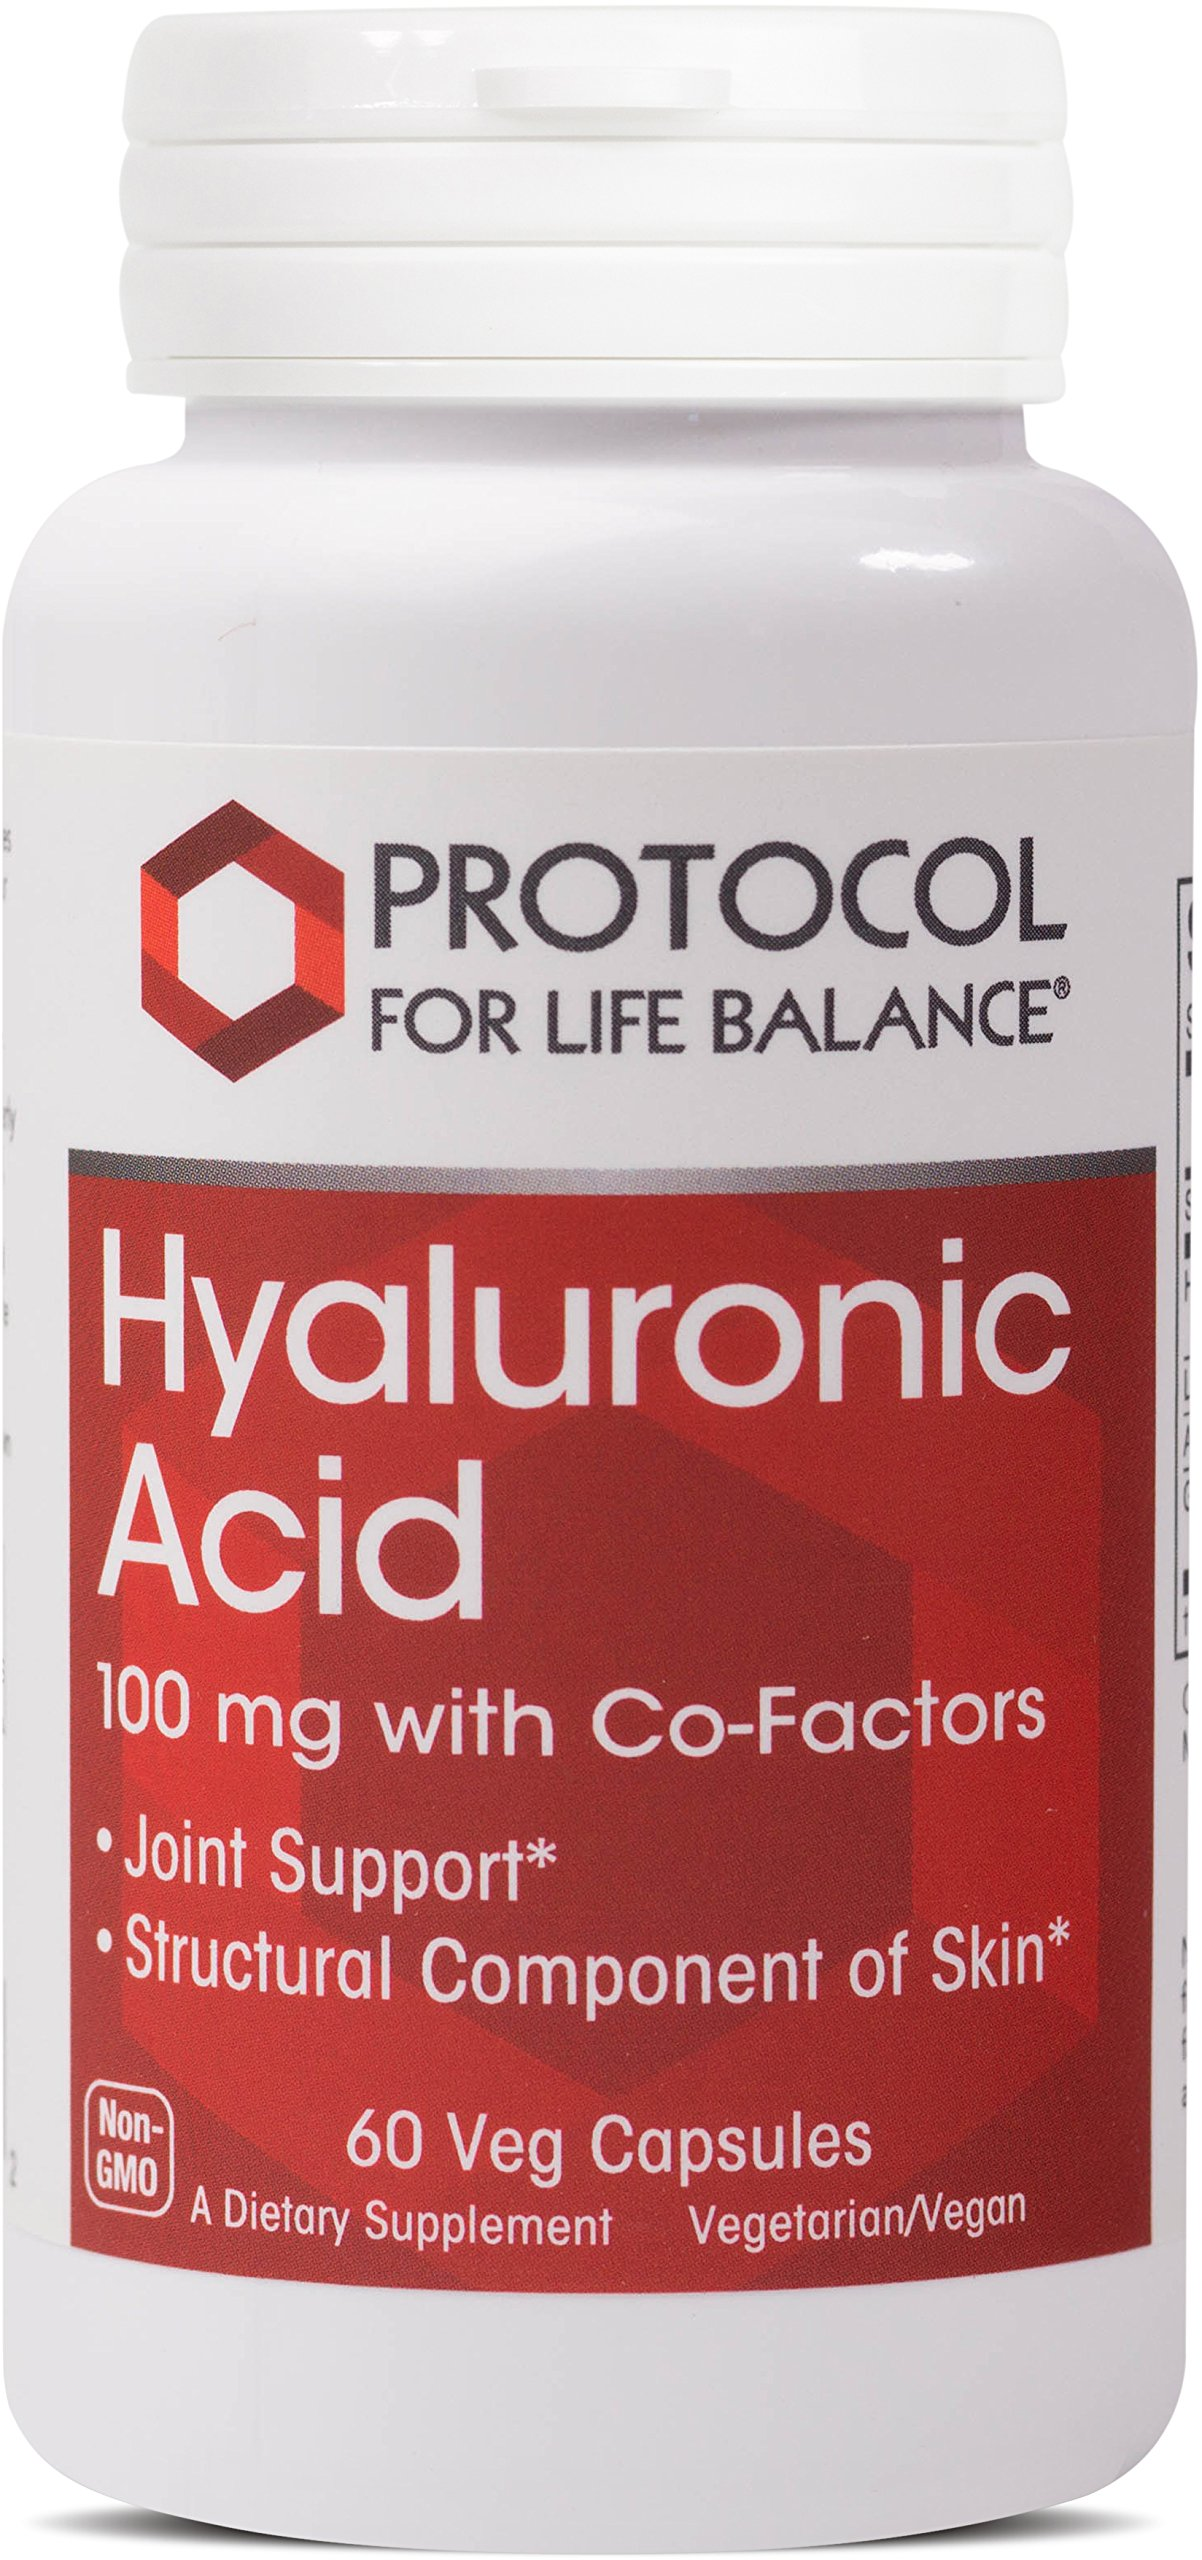 Protocol For Life Balance - Hyaluronic Acid - 100 mg with Co-factors for Overall Tissue Health Including Joint Support and Skin Hydration - 60 Vcaps